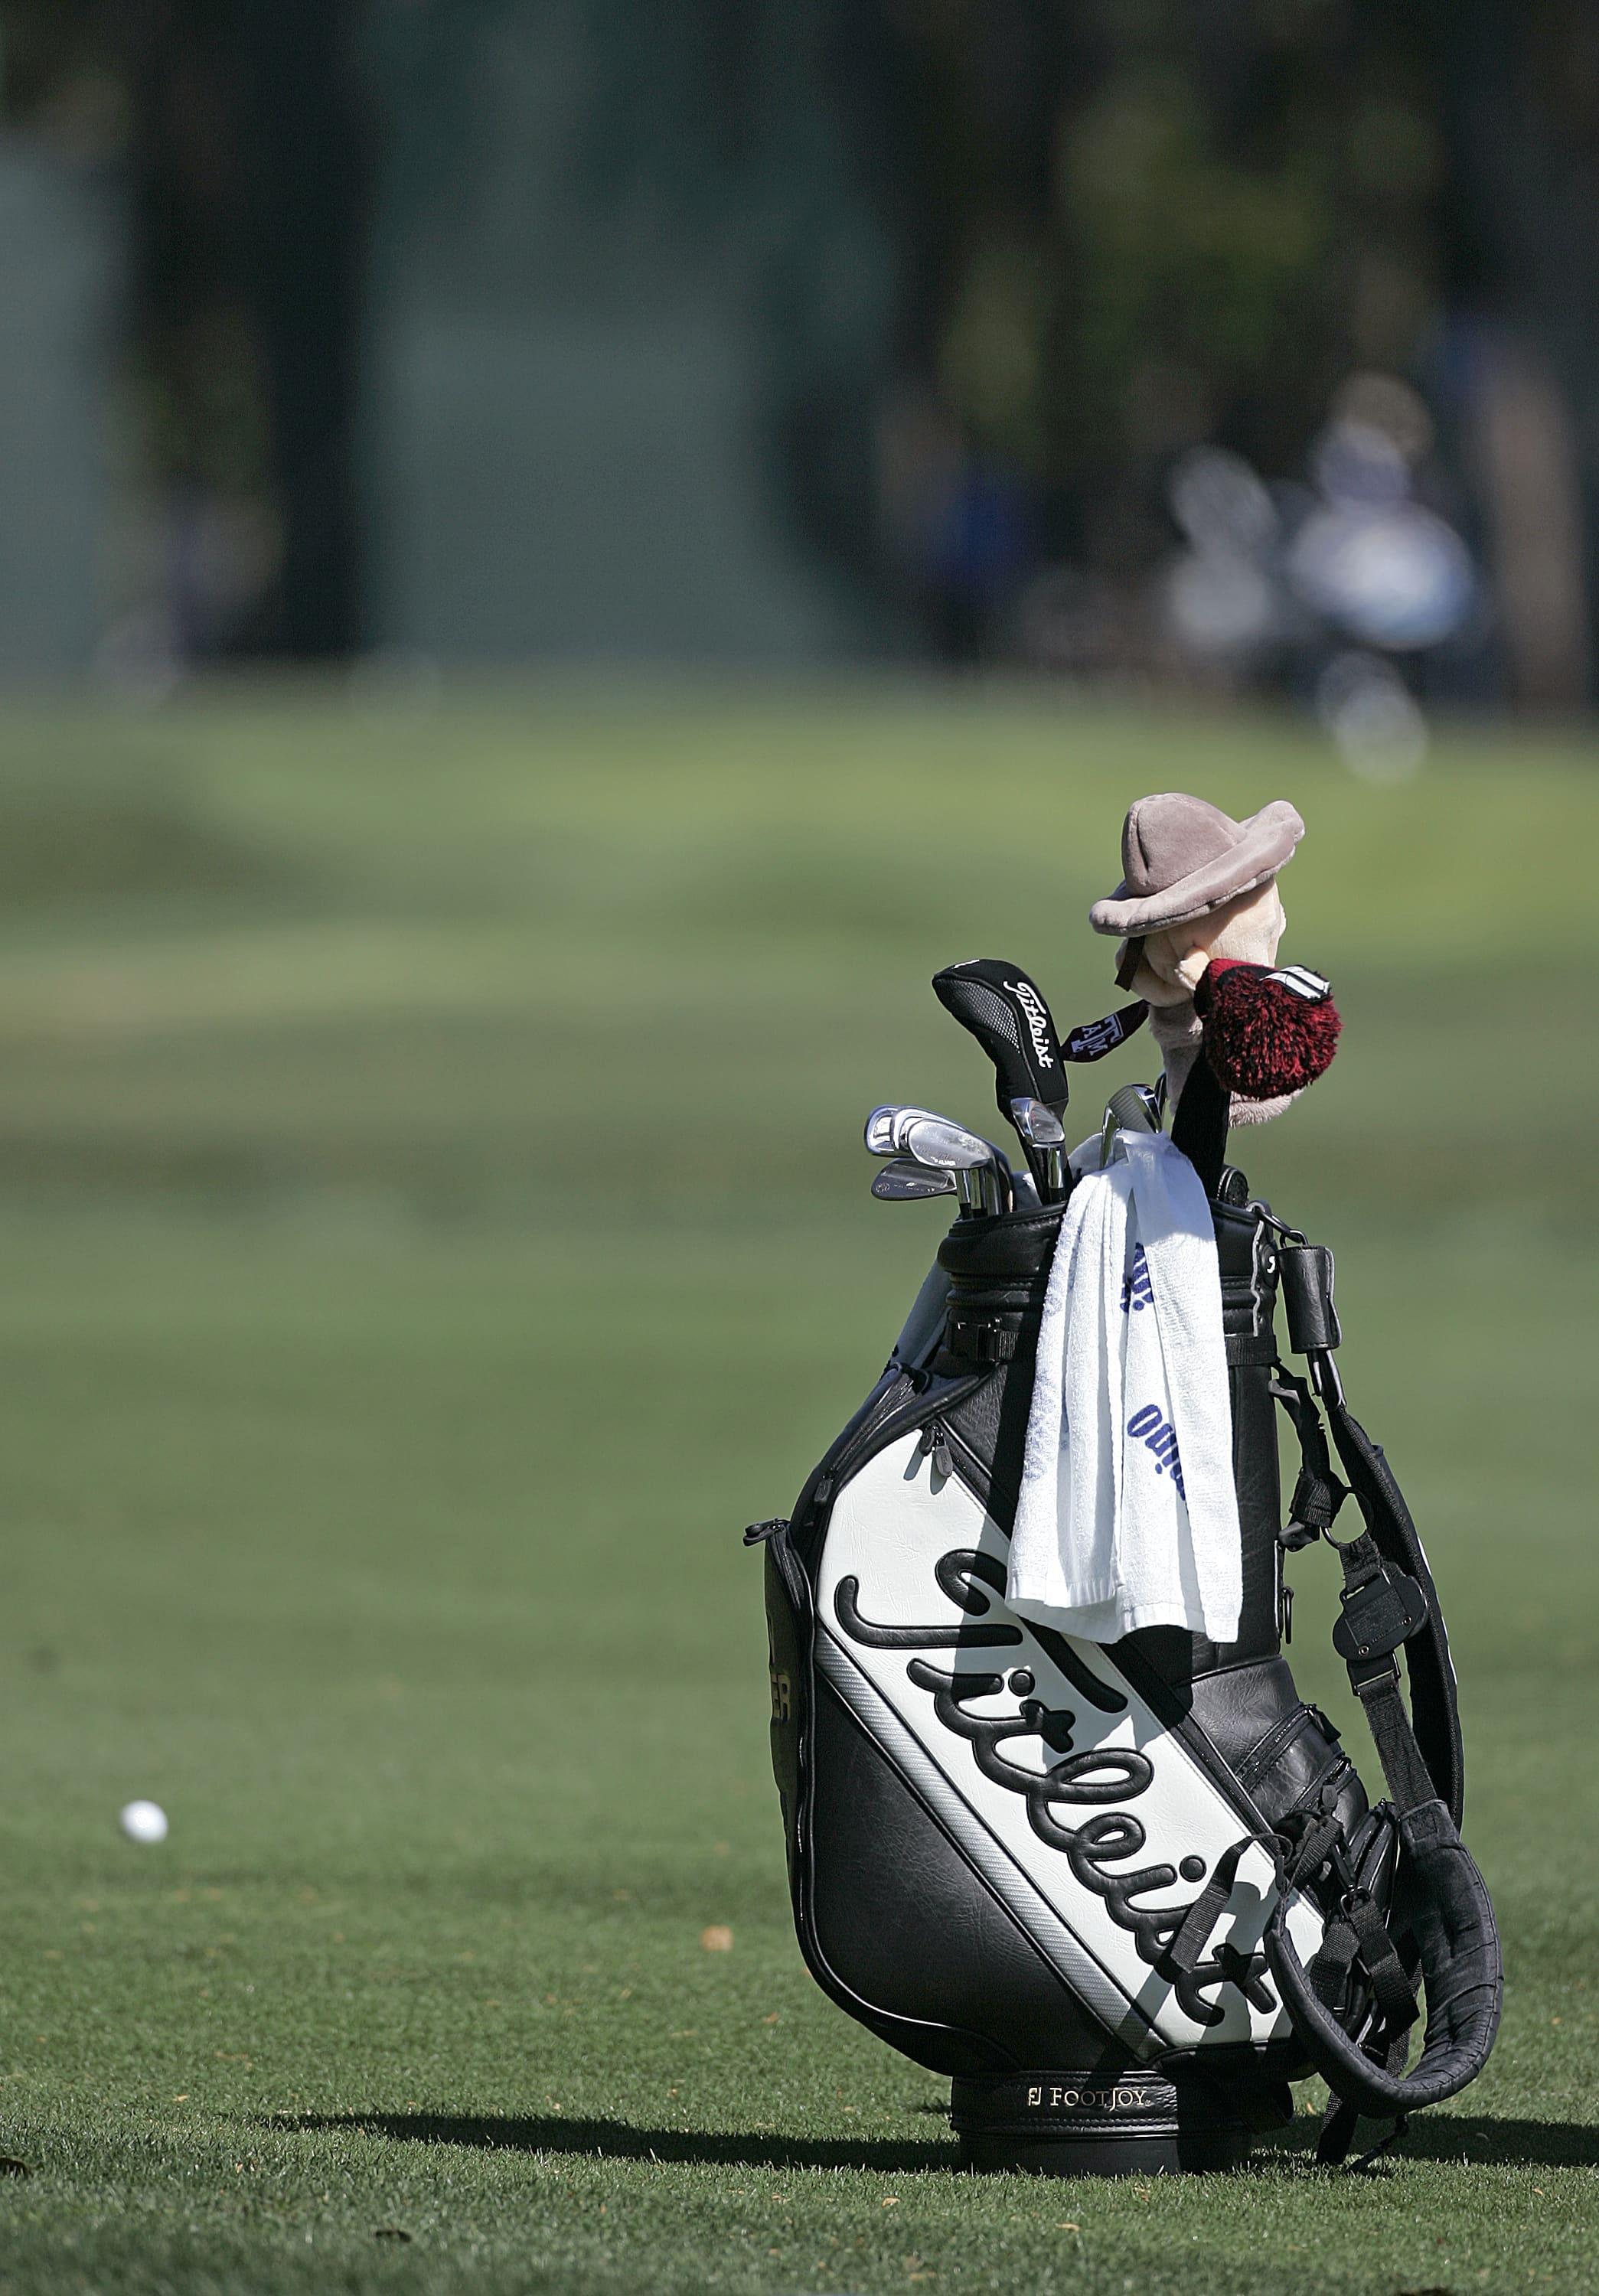 UNITED STATES - MARCH 22:  Titleist bag on the fairway during a practice round for THE PLAYERS Championship held at the TPC Stadium Course in Ponte Vedra Beach, Florida on Wednesday, March 22, 2006.  (Photo by Michael Cohen/Getty Images)